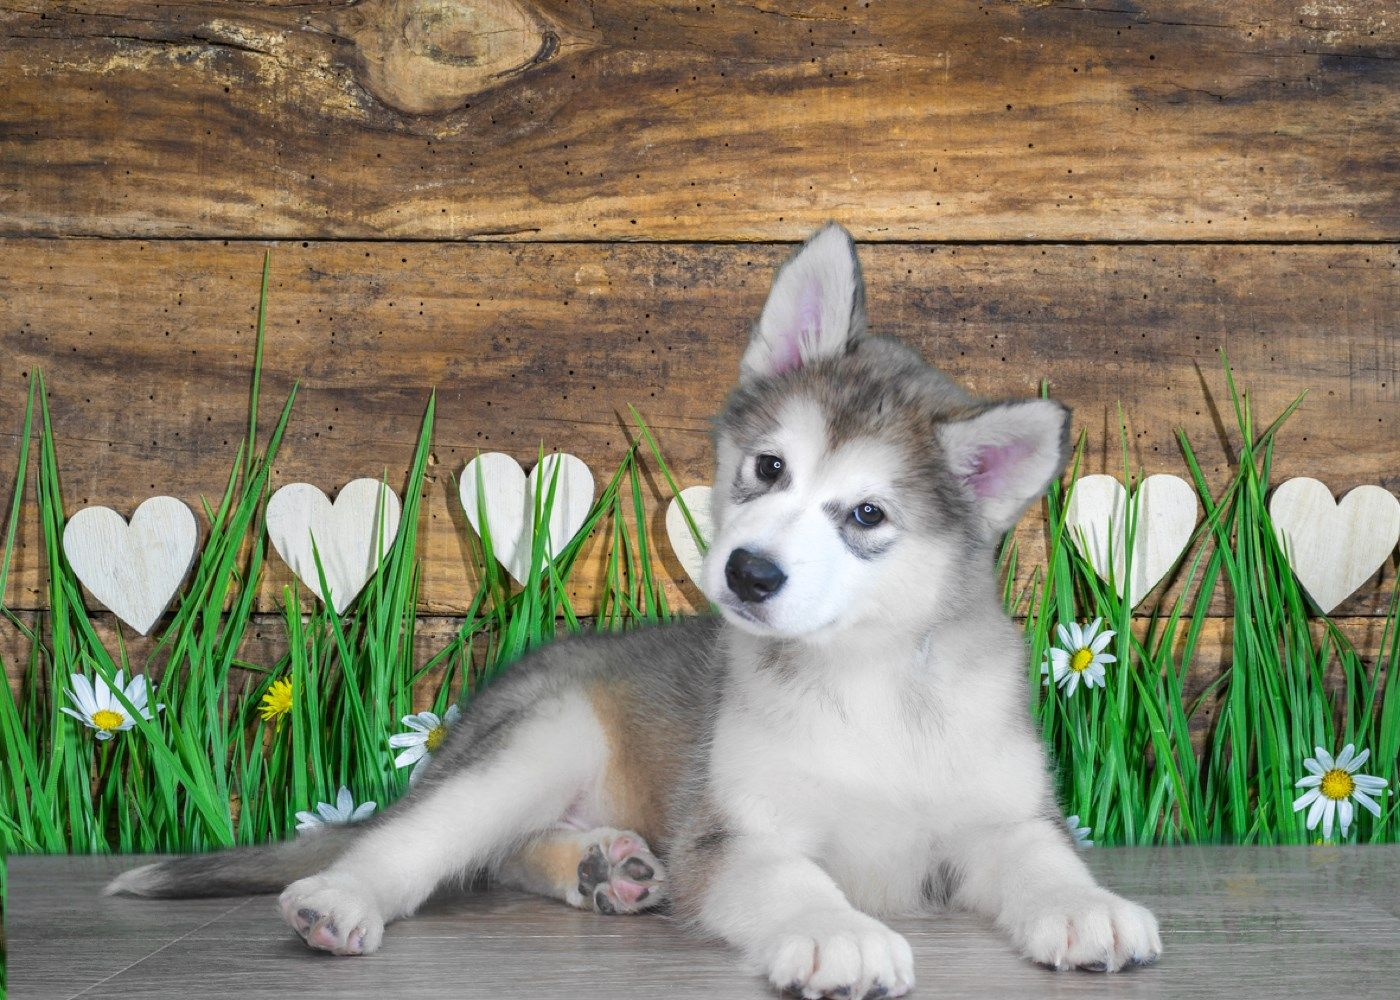 To Check Availability Of This Puppy Please Visit Us At Www Puppiesforsaletoday Com Or Give Us A Call At 435 2 Pet Store Puppies Buy Puppies Online Pet Store